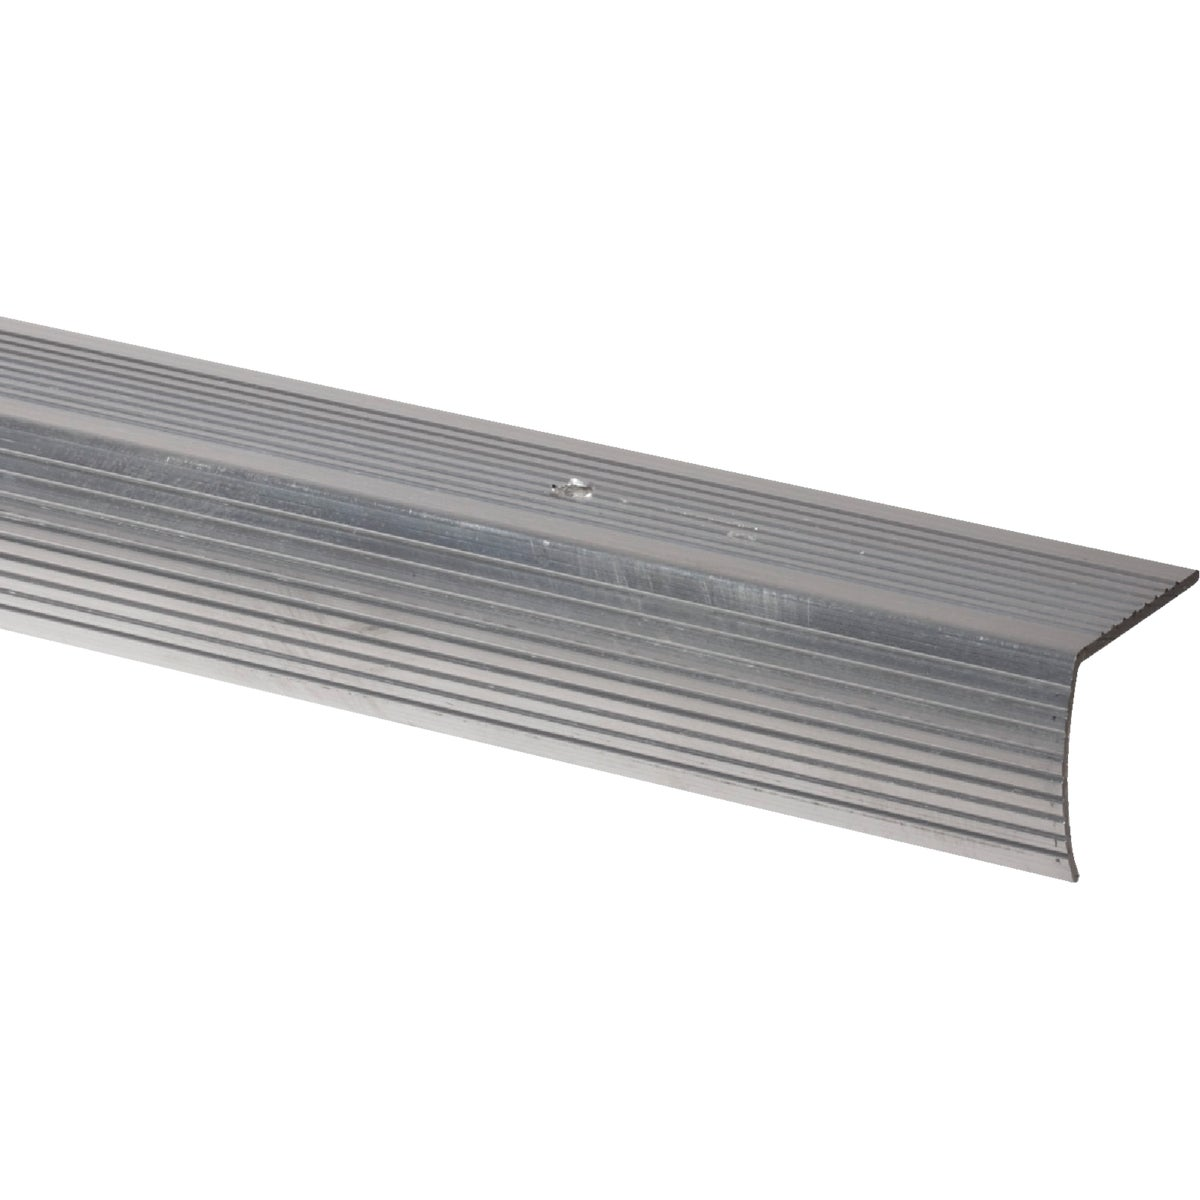 "1-1/8""X6' SLVR EDGING - H4128FS6DI by Thermwell Prods Co"